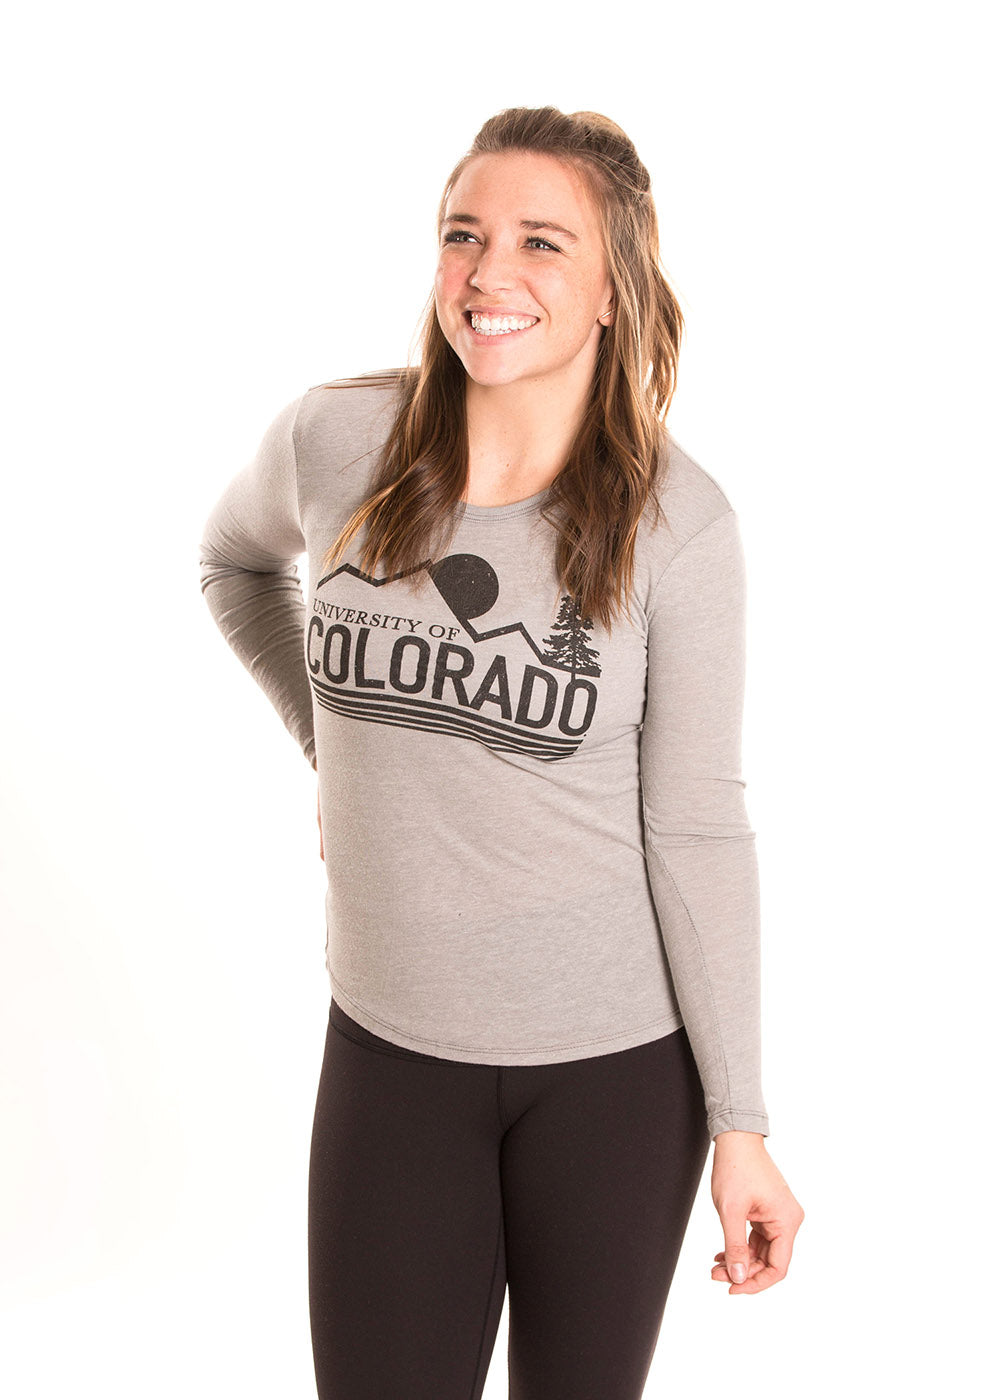 UNIVERSITY OF COLORADO Buffaloes Women's Long Sleeve Tee